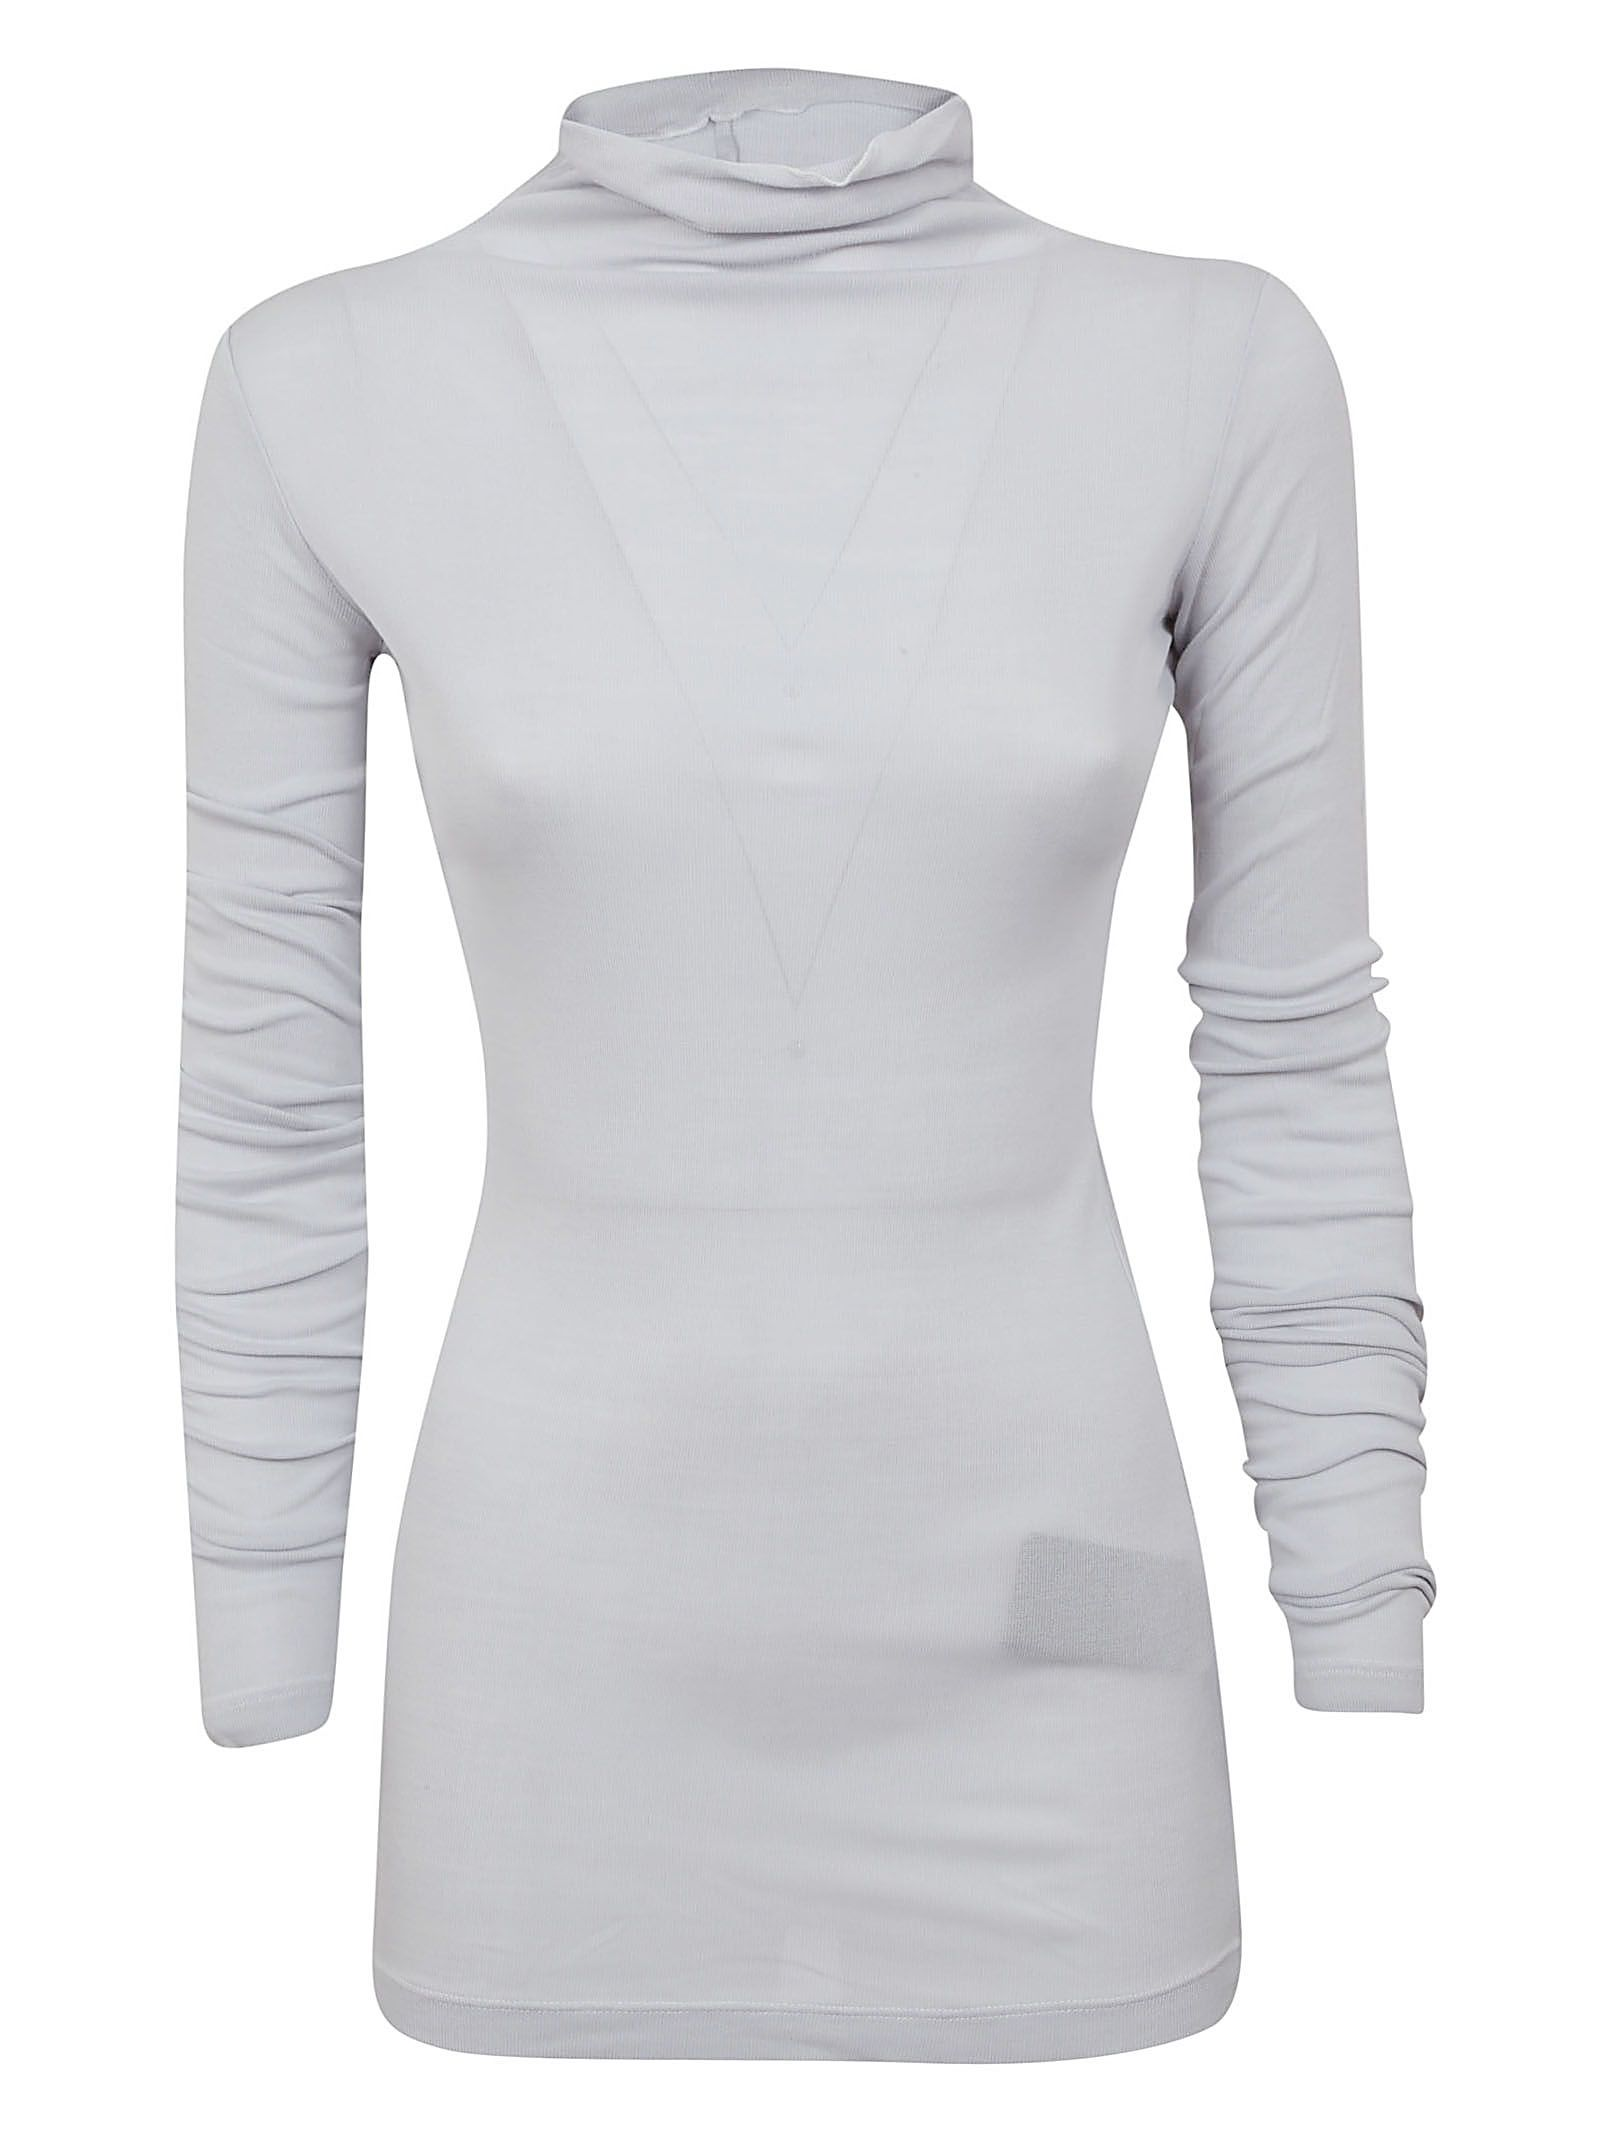 BEN TAVERNITI UNRAVEL PROJECT LONG SLEEVED TOP